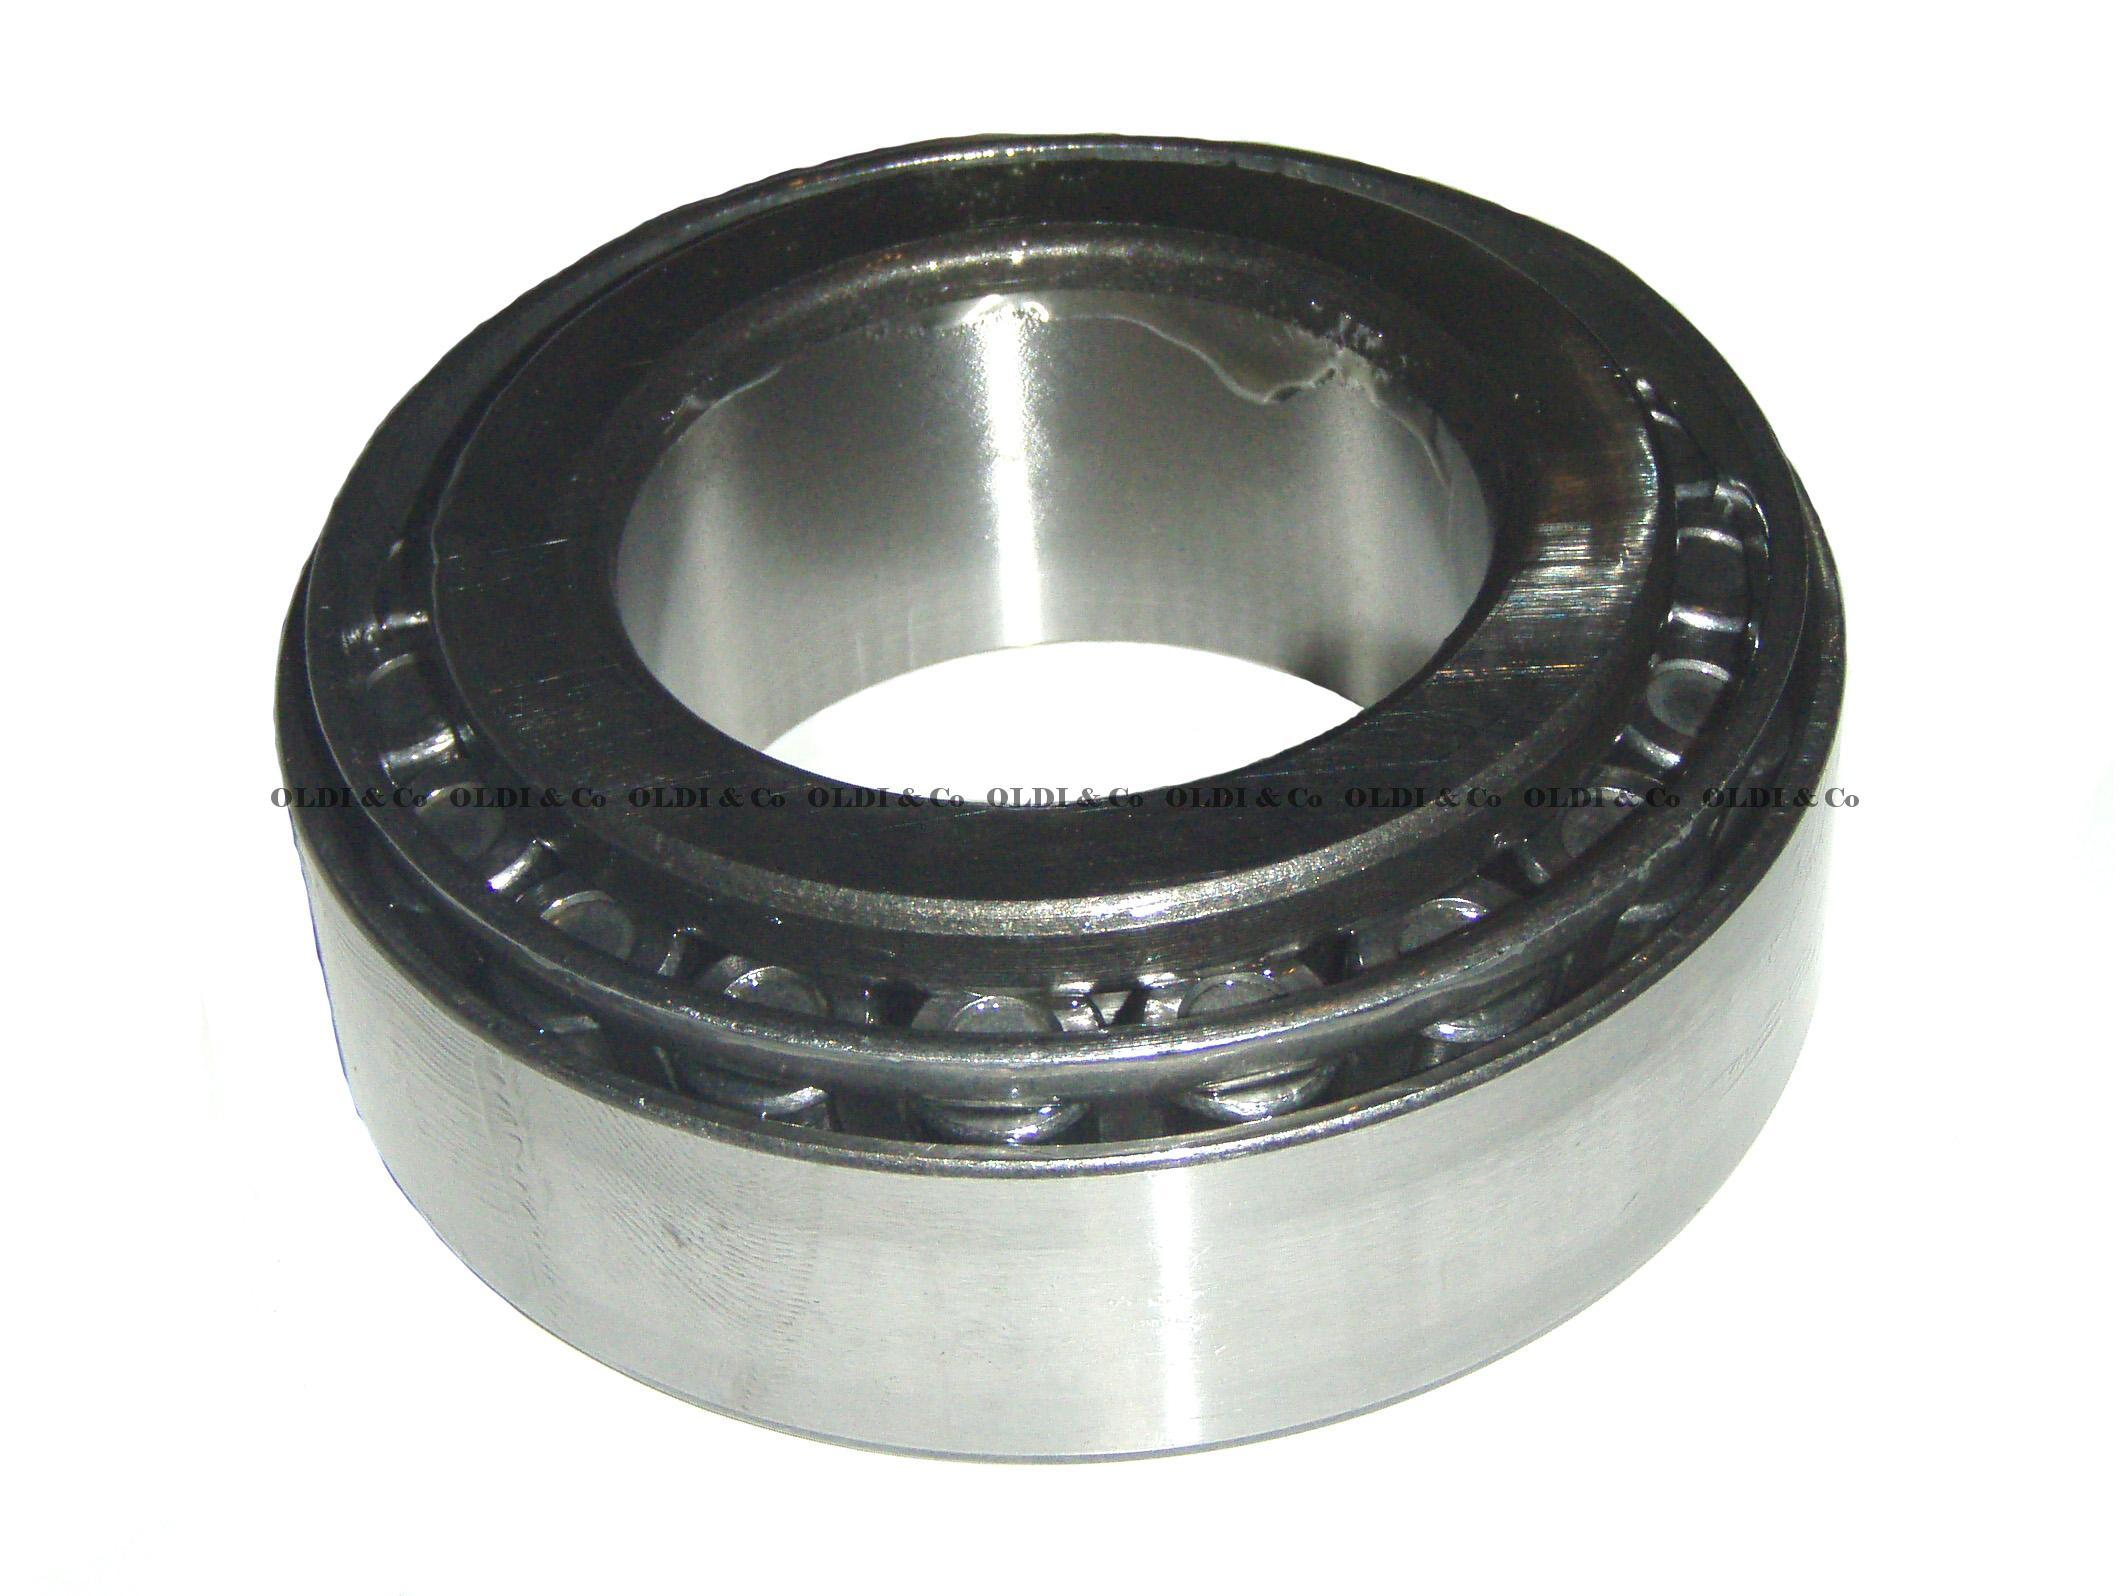 34.040.14556 - Suspension parts - Wheel bearing - Piekares detaļas - Rumbas  gultnis -